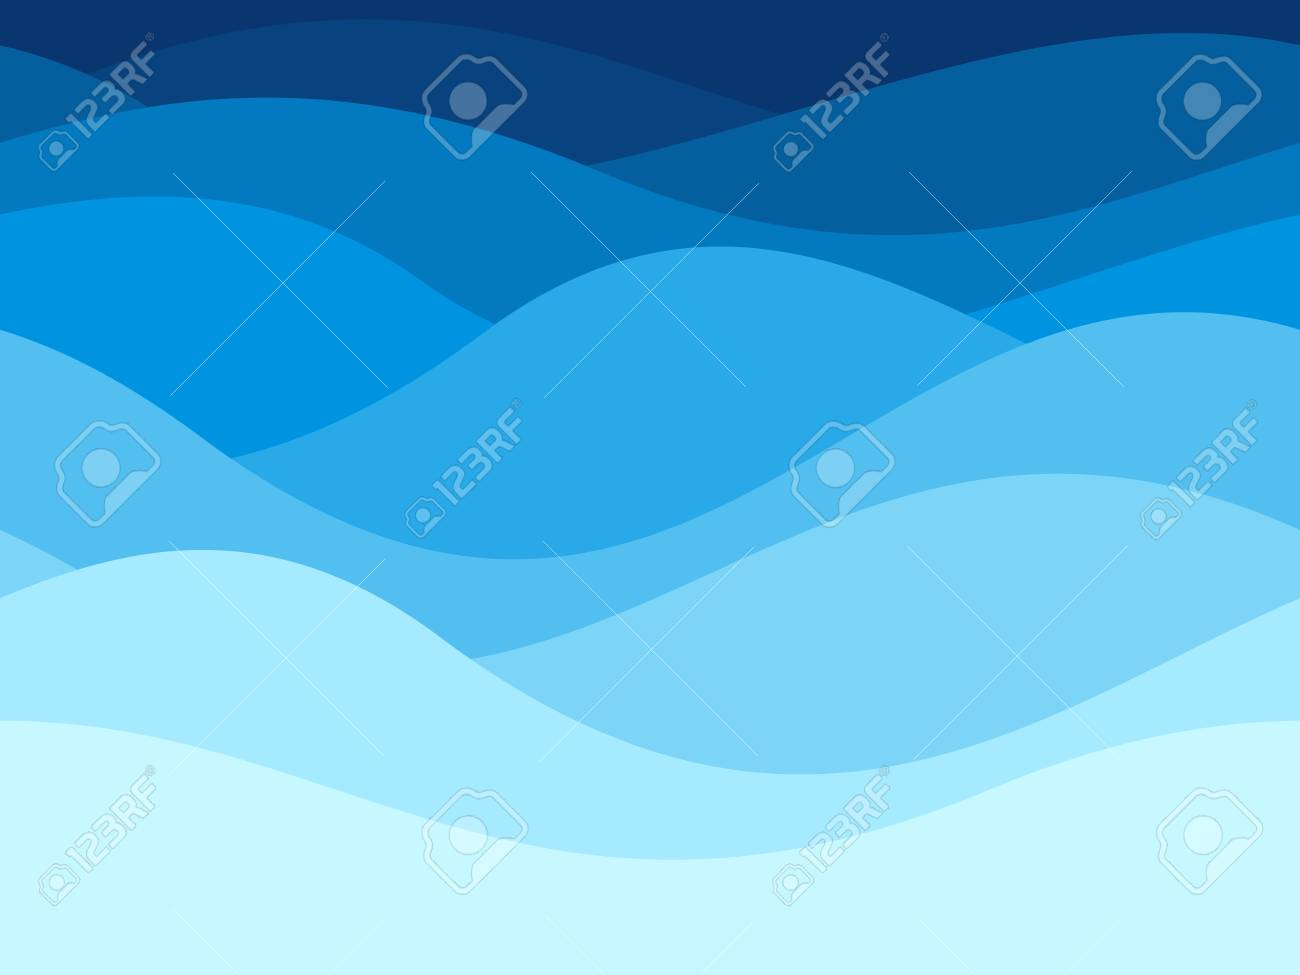 Blue waves pattern. Summer lake wave lines, beach waves water flow curve abstract landscape, vibrant silk textile texture vector seamless background - 111655105